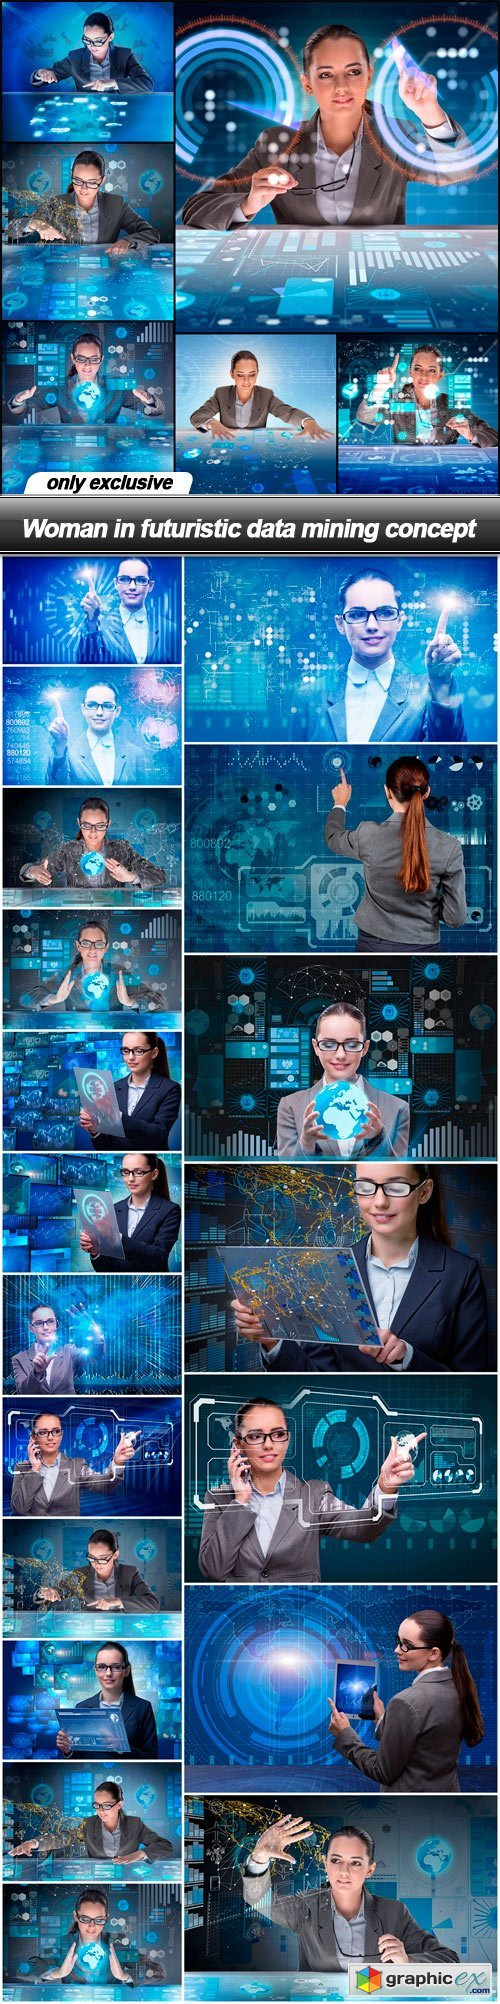 Woman in futuristic data mining concept - 25 UHQ JPEG